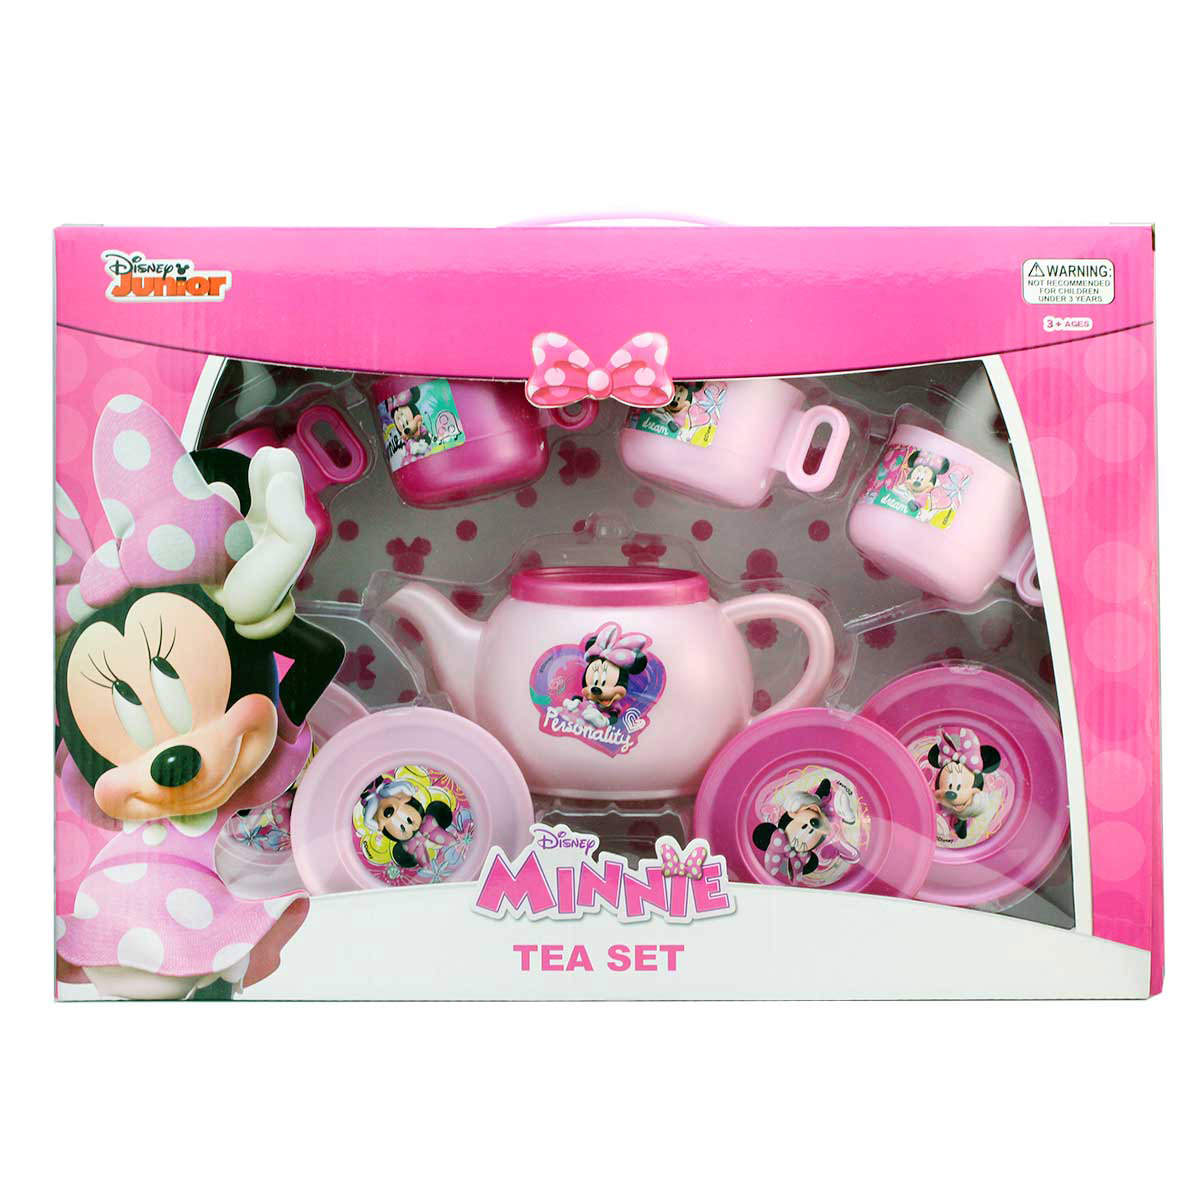 Disney Junior Minnie Mouse Tea Set 9 pcs Teapot Cup Plate Pretend Role Play Toy